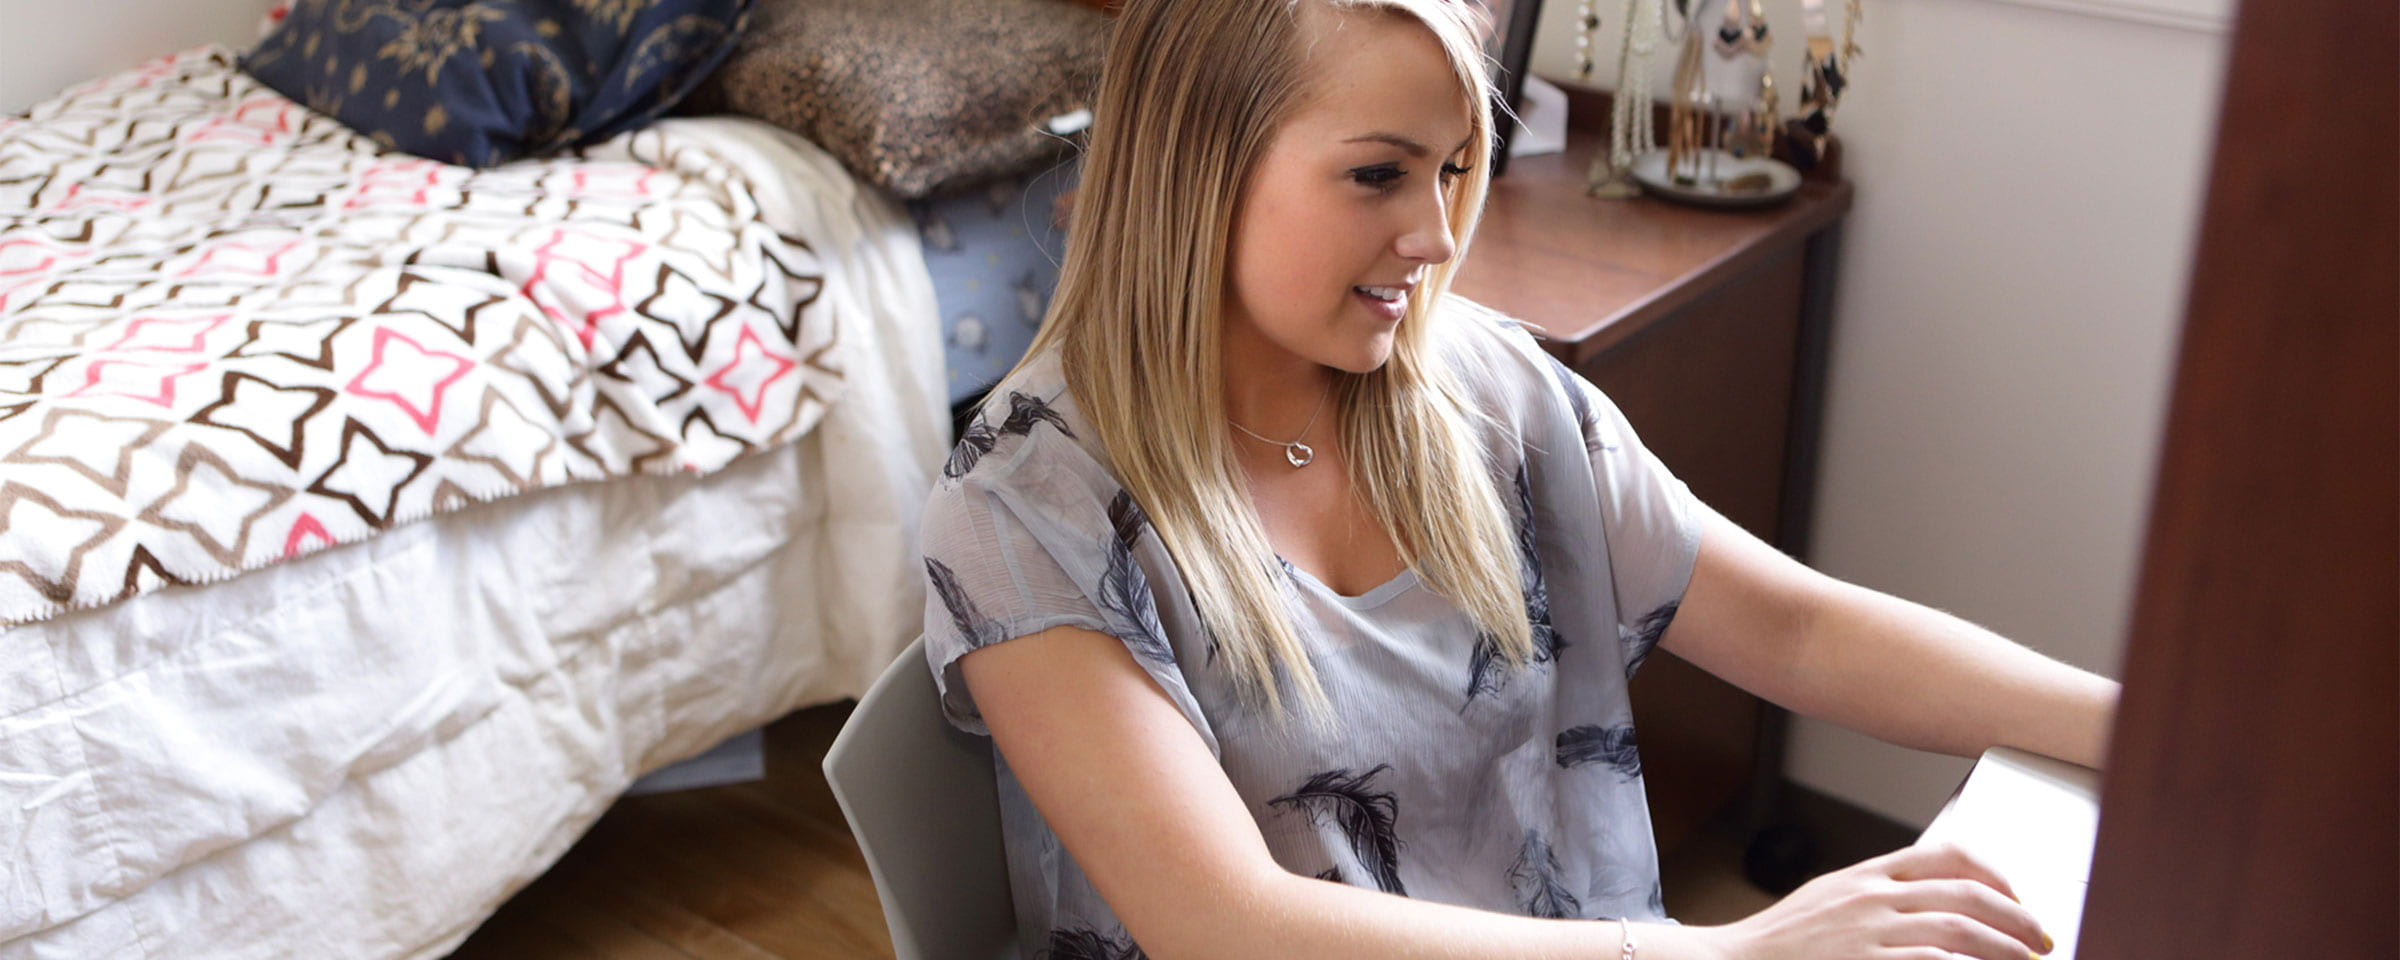 Female student working at desk in dorm room